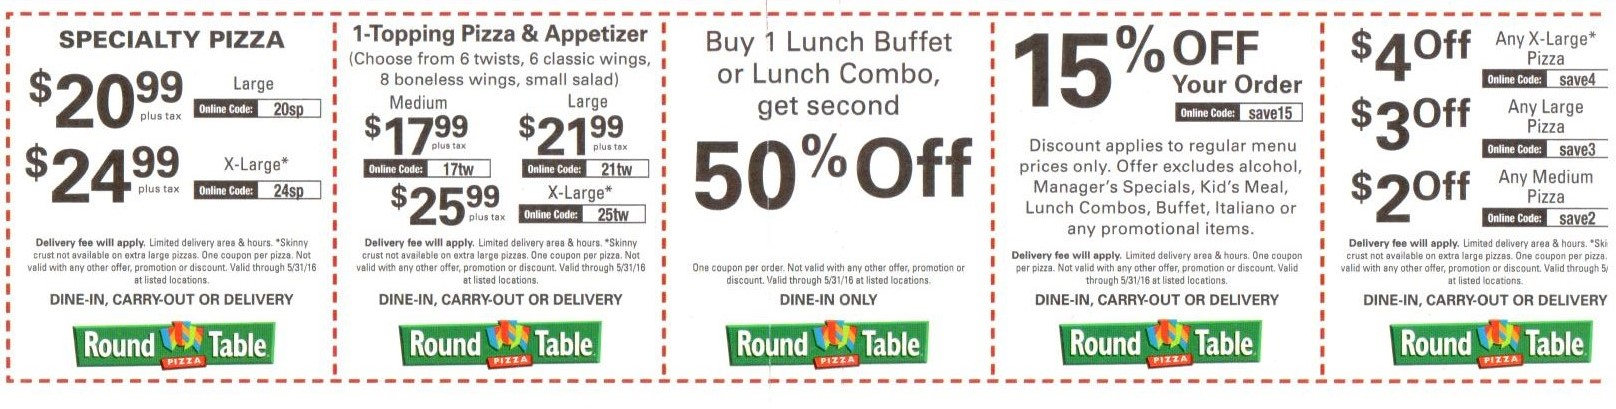 Round Table Pizza Buffet Coupons Interior Design D - Round table lunch special